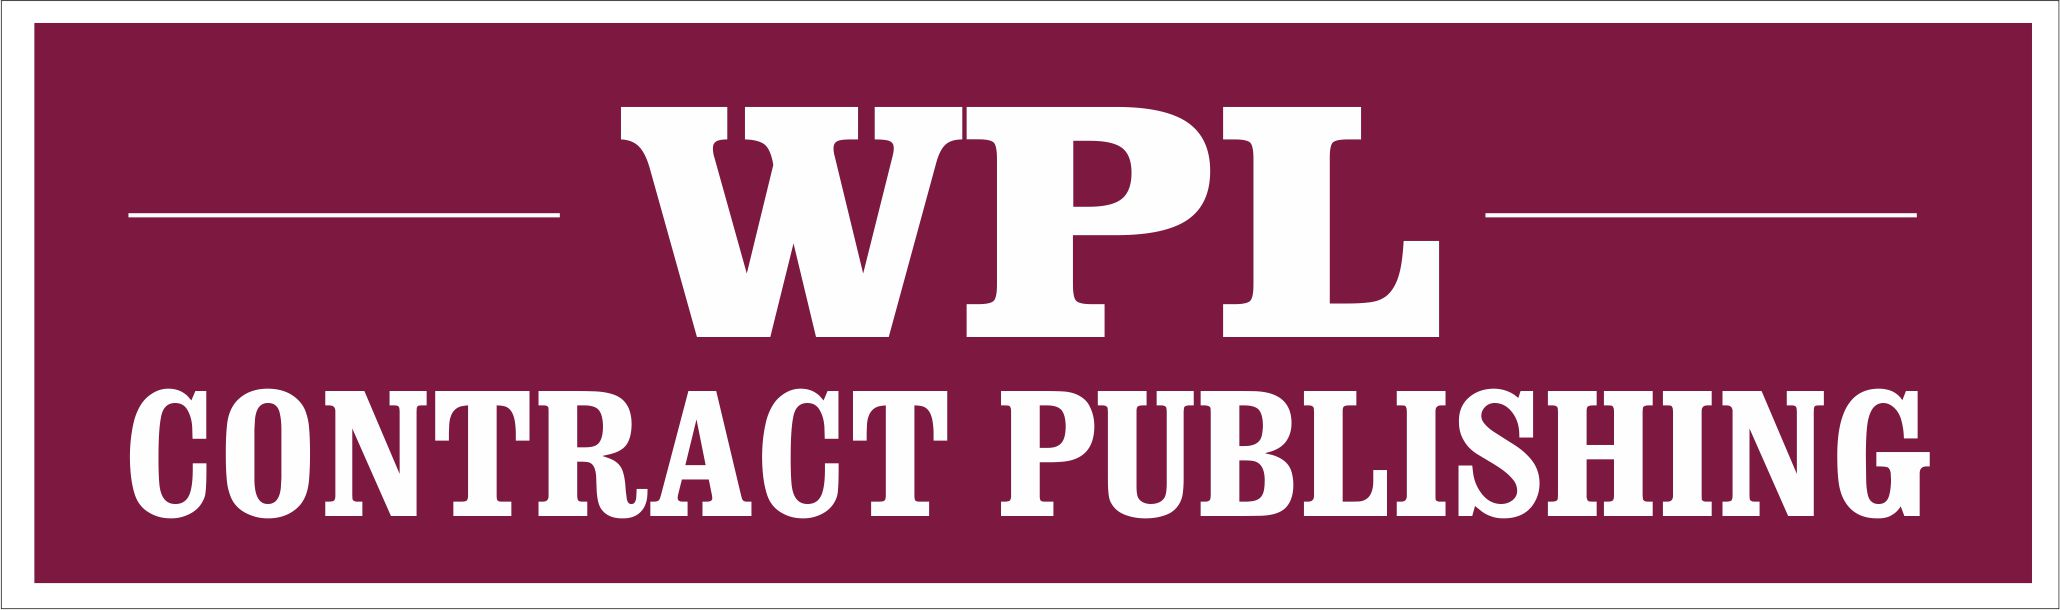 WPL Contract Publishing